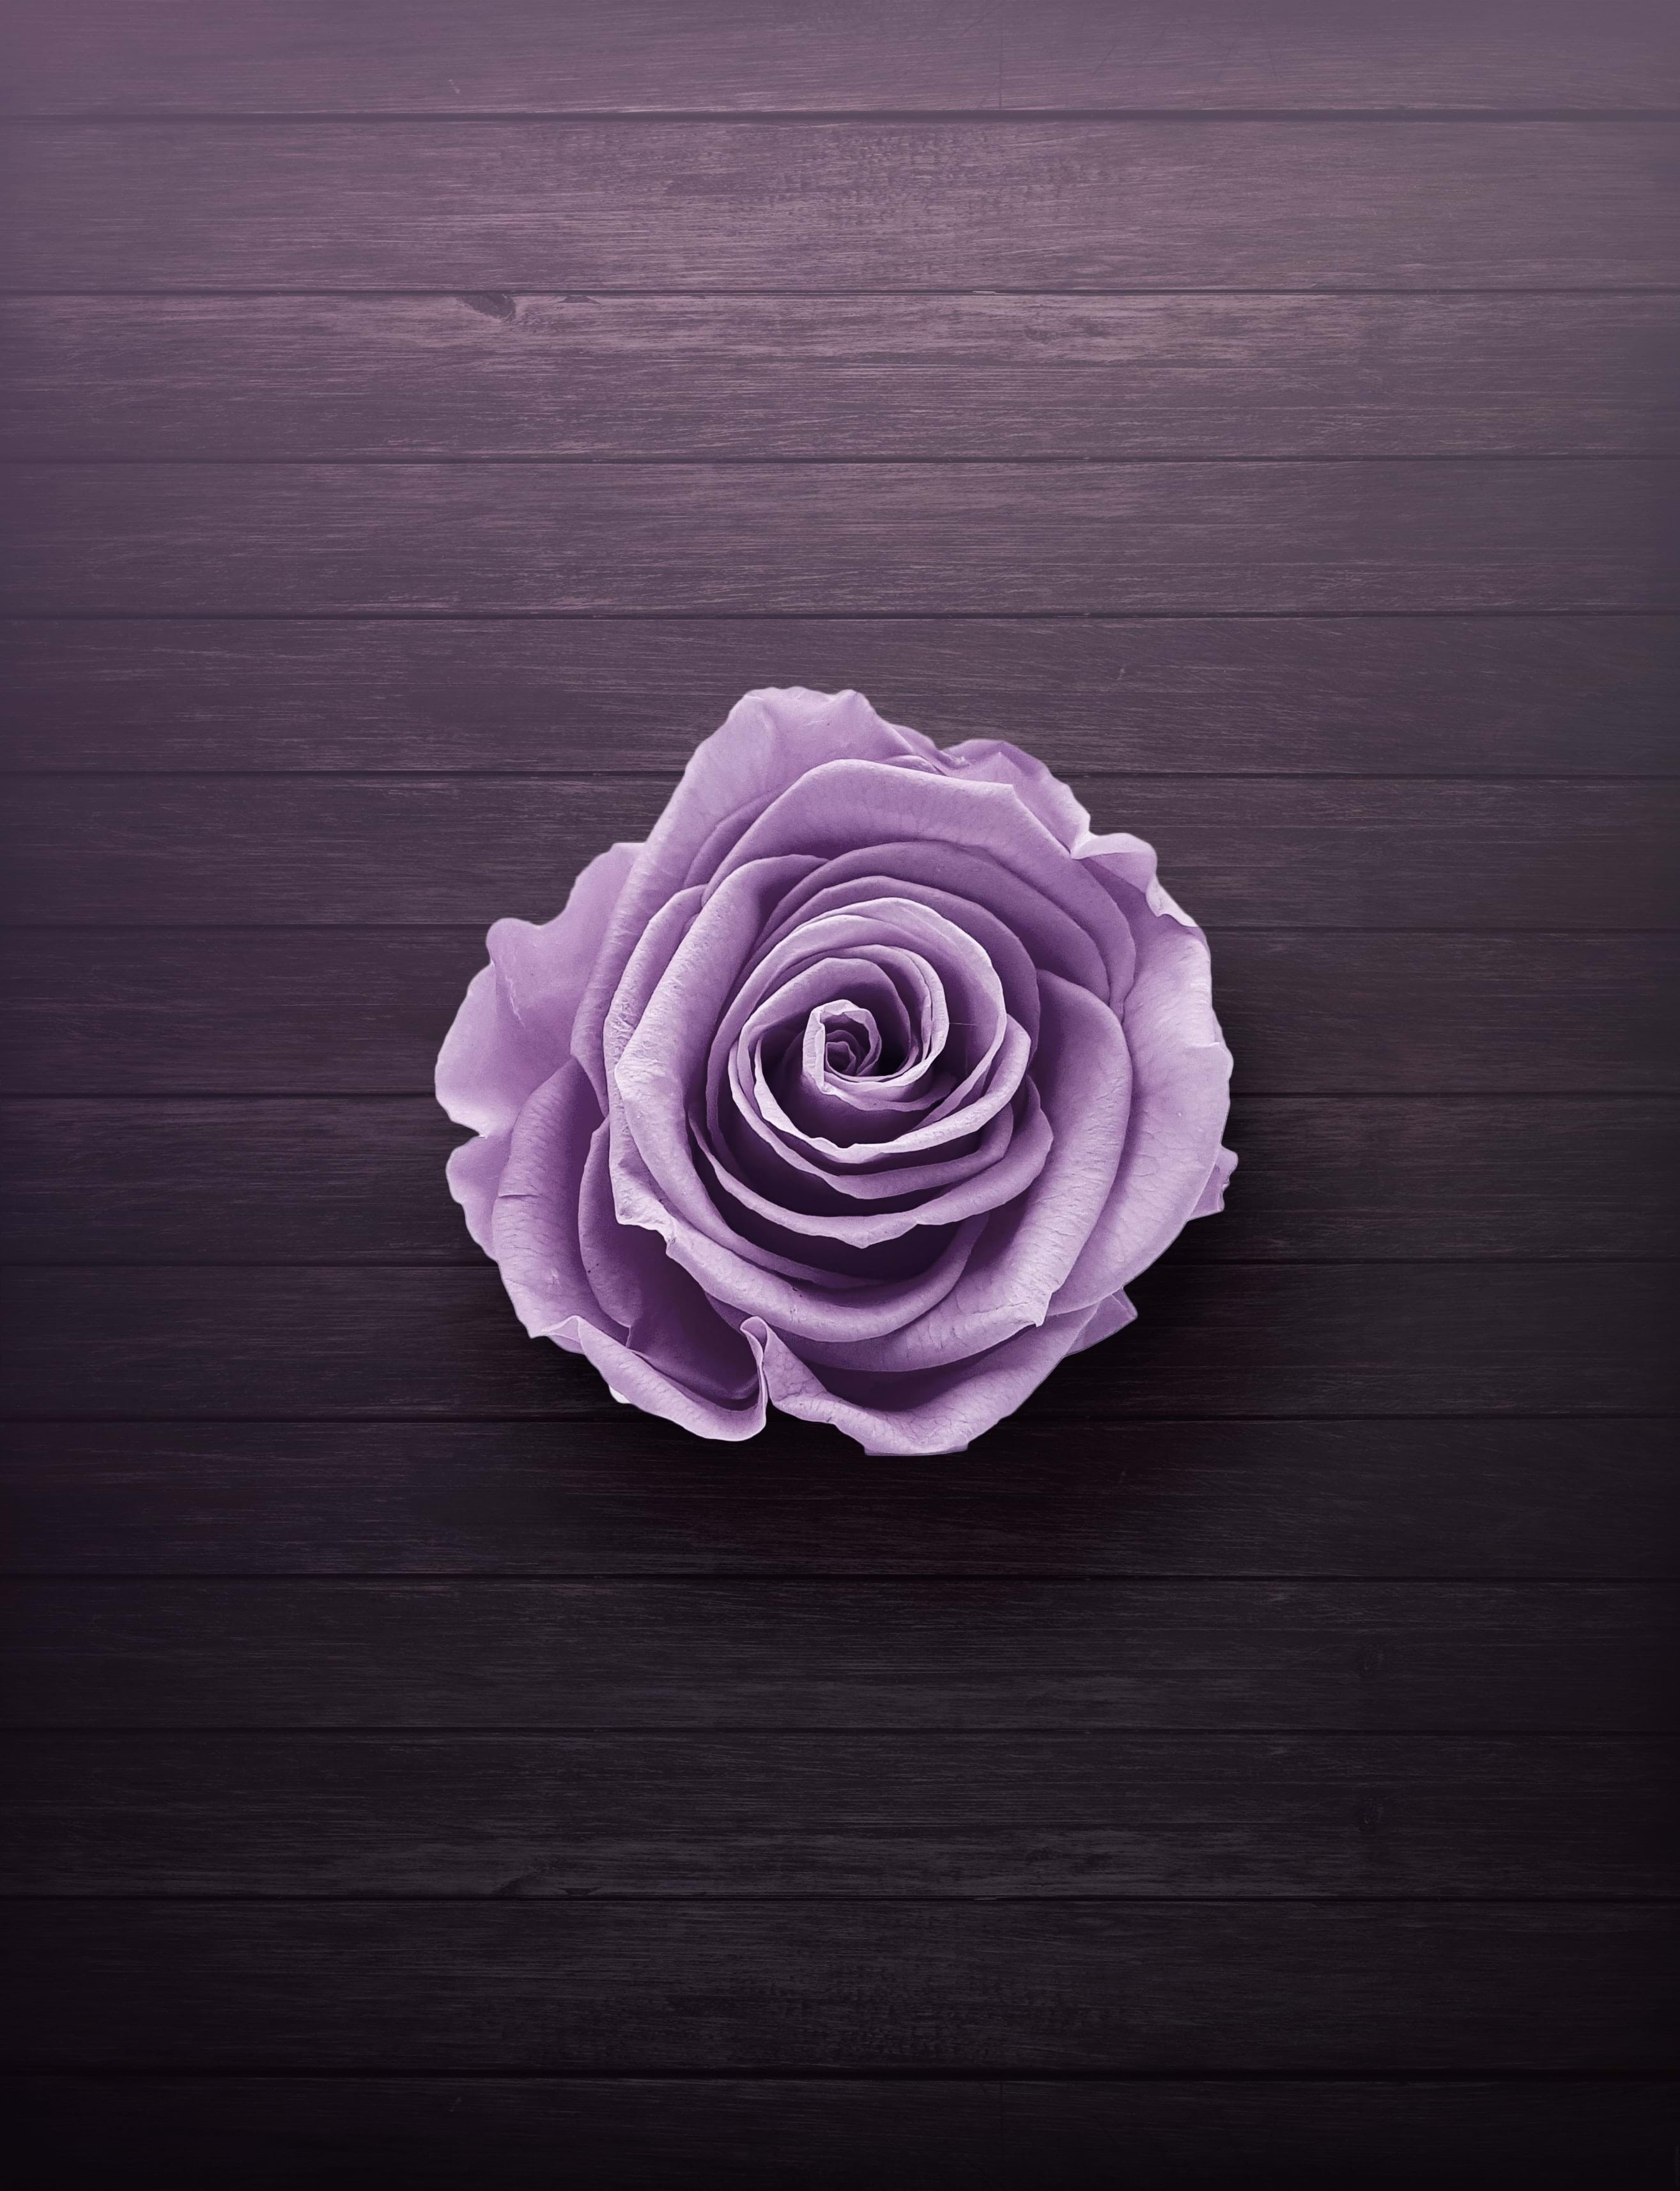 A light purple rose sat on a wooden background